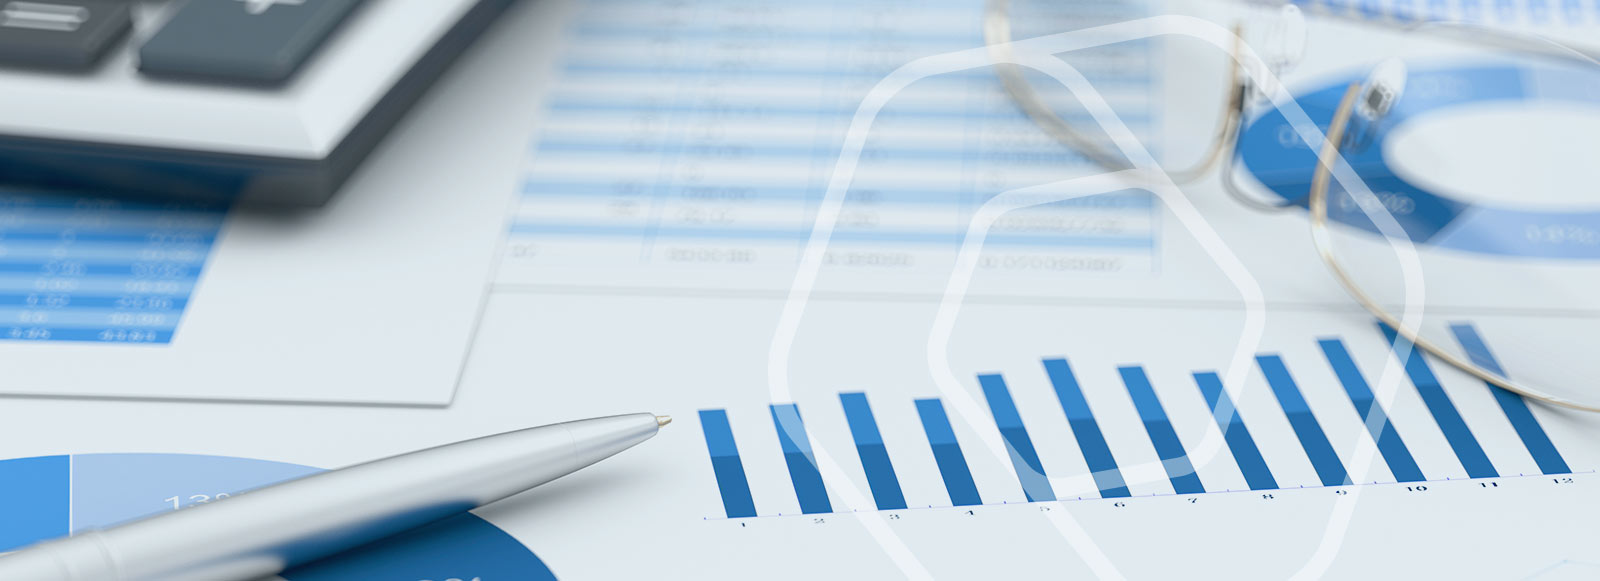 accounting-valuations-background-no-photo